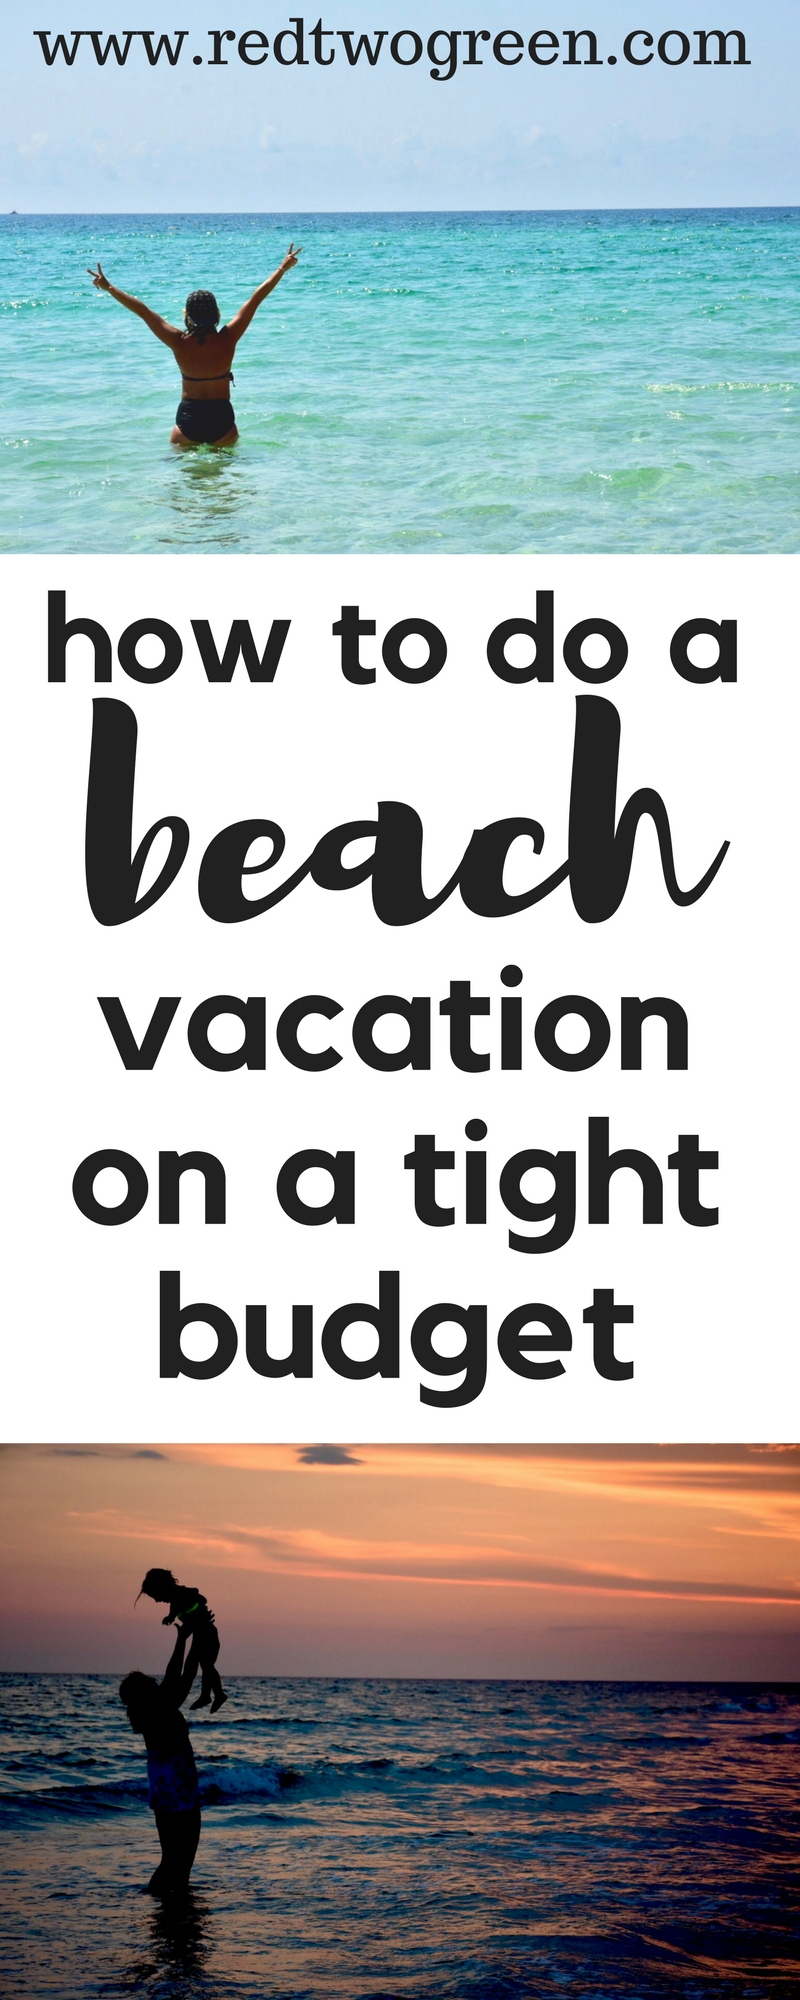 how to take a beach vacation on a budget deeply in debt